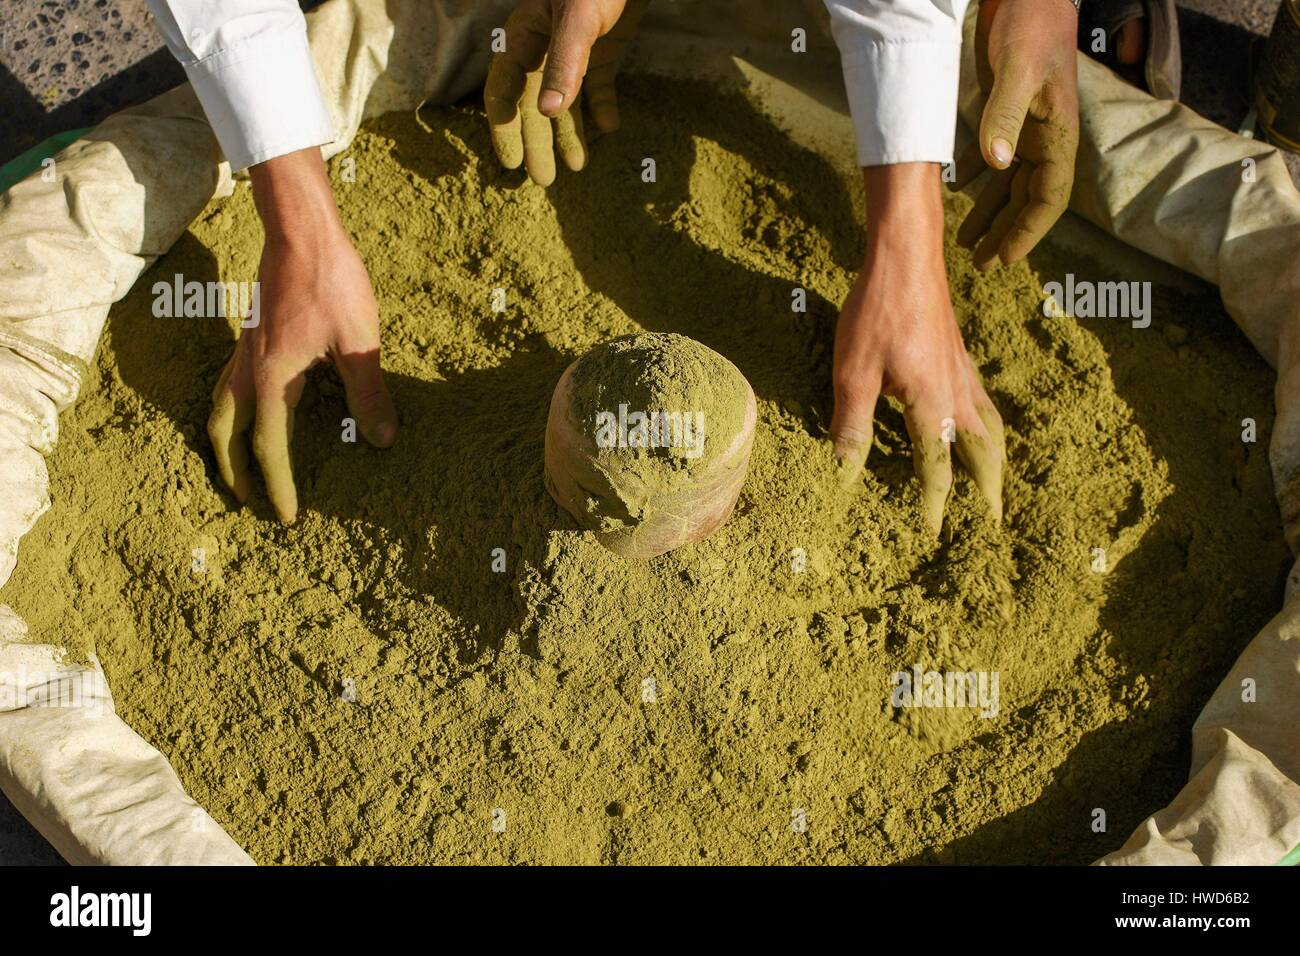 Yemen Henna Stock Photo 136129366 Alamy